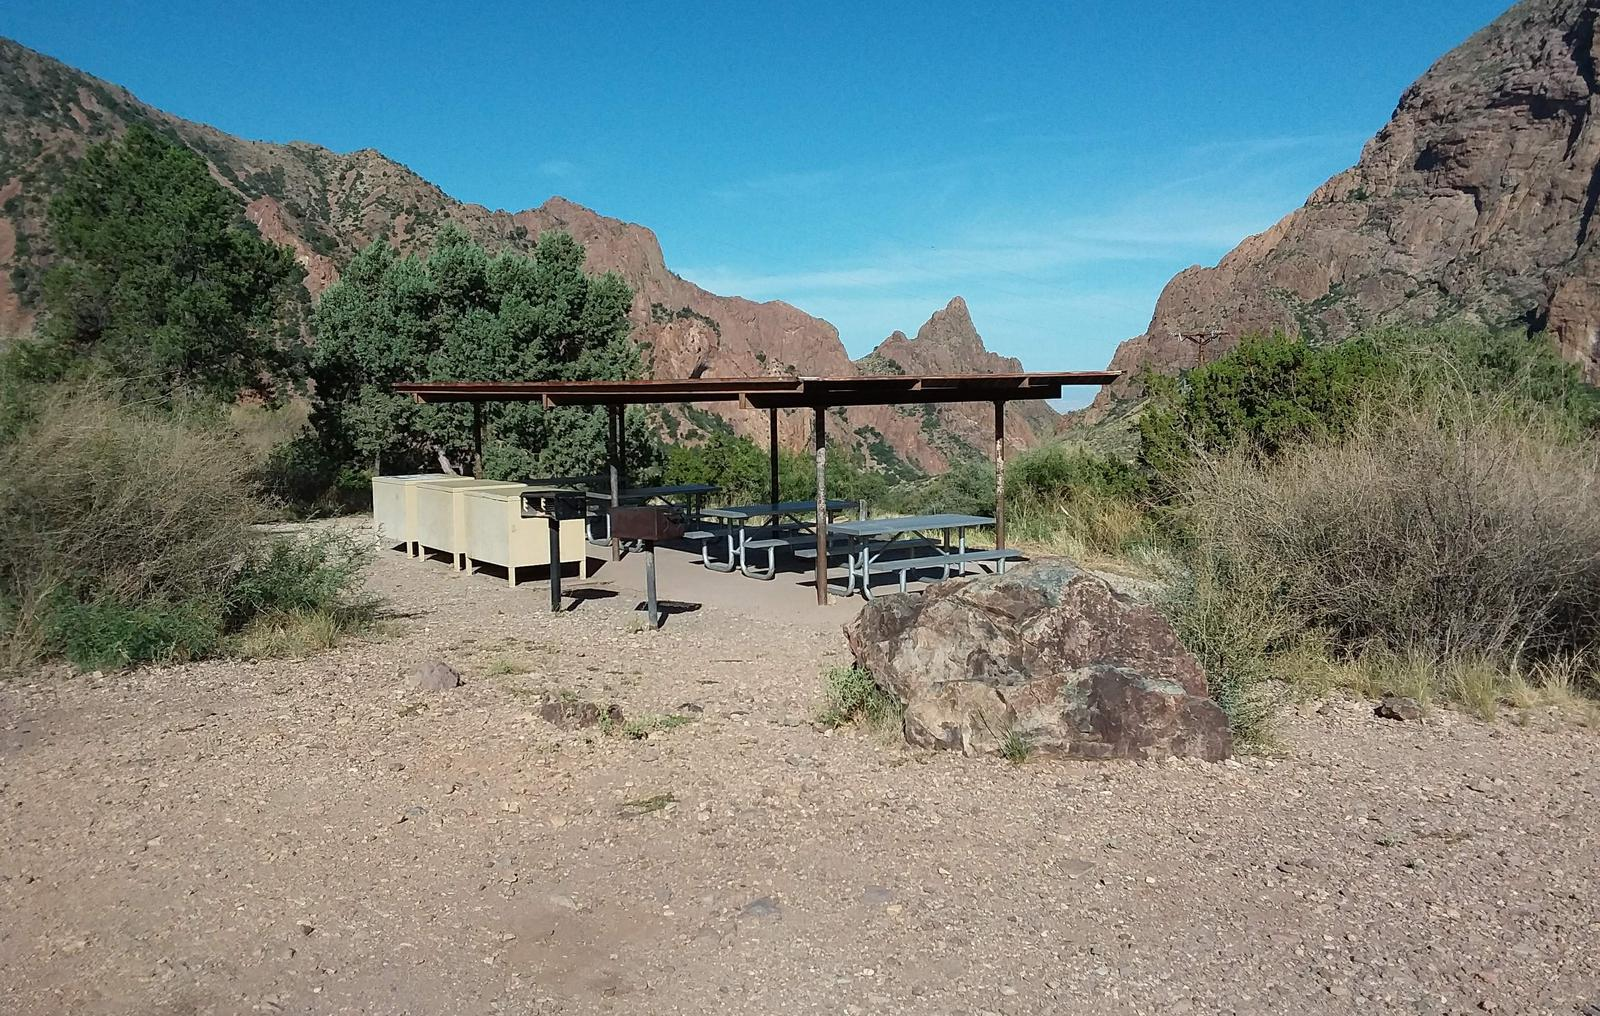 Flat area with shade structure and gathering area looking out over the mountainsShade structure and gathering area